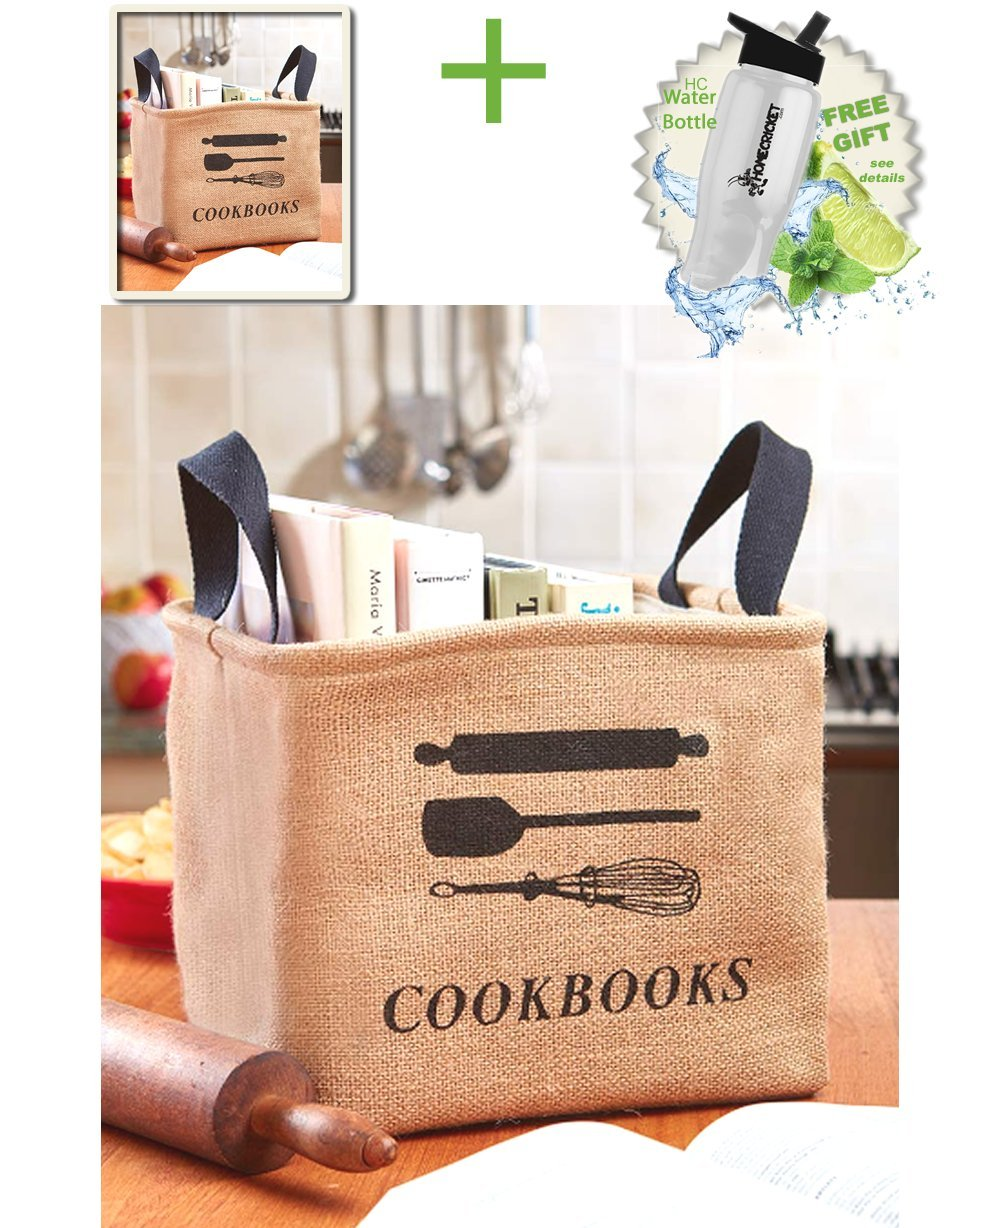 Gift Included- Kitchen Cookbook Recipe Cook Book Storage Bin Tote Bag  + FREE Bonus Water Bottle by Home Cricket Homecricket  by HomeCricket (Image #1)